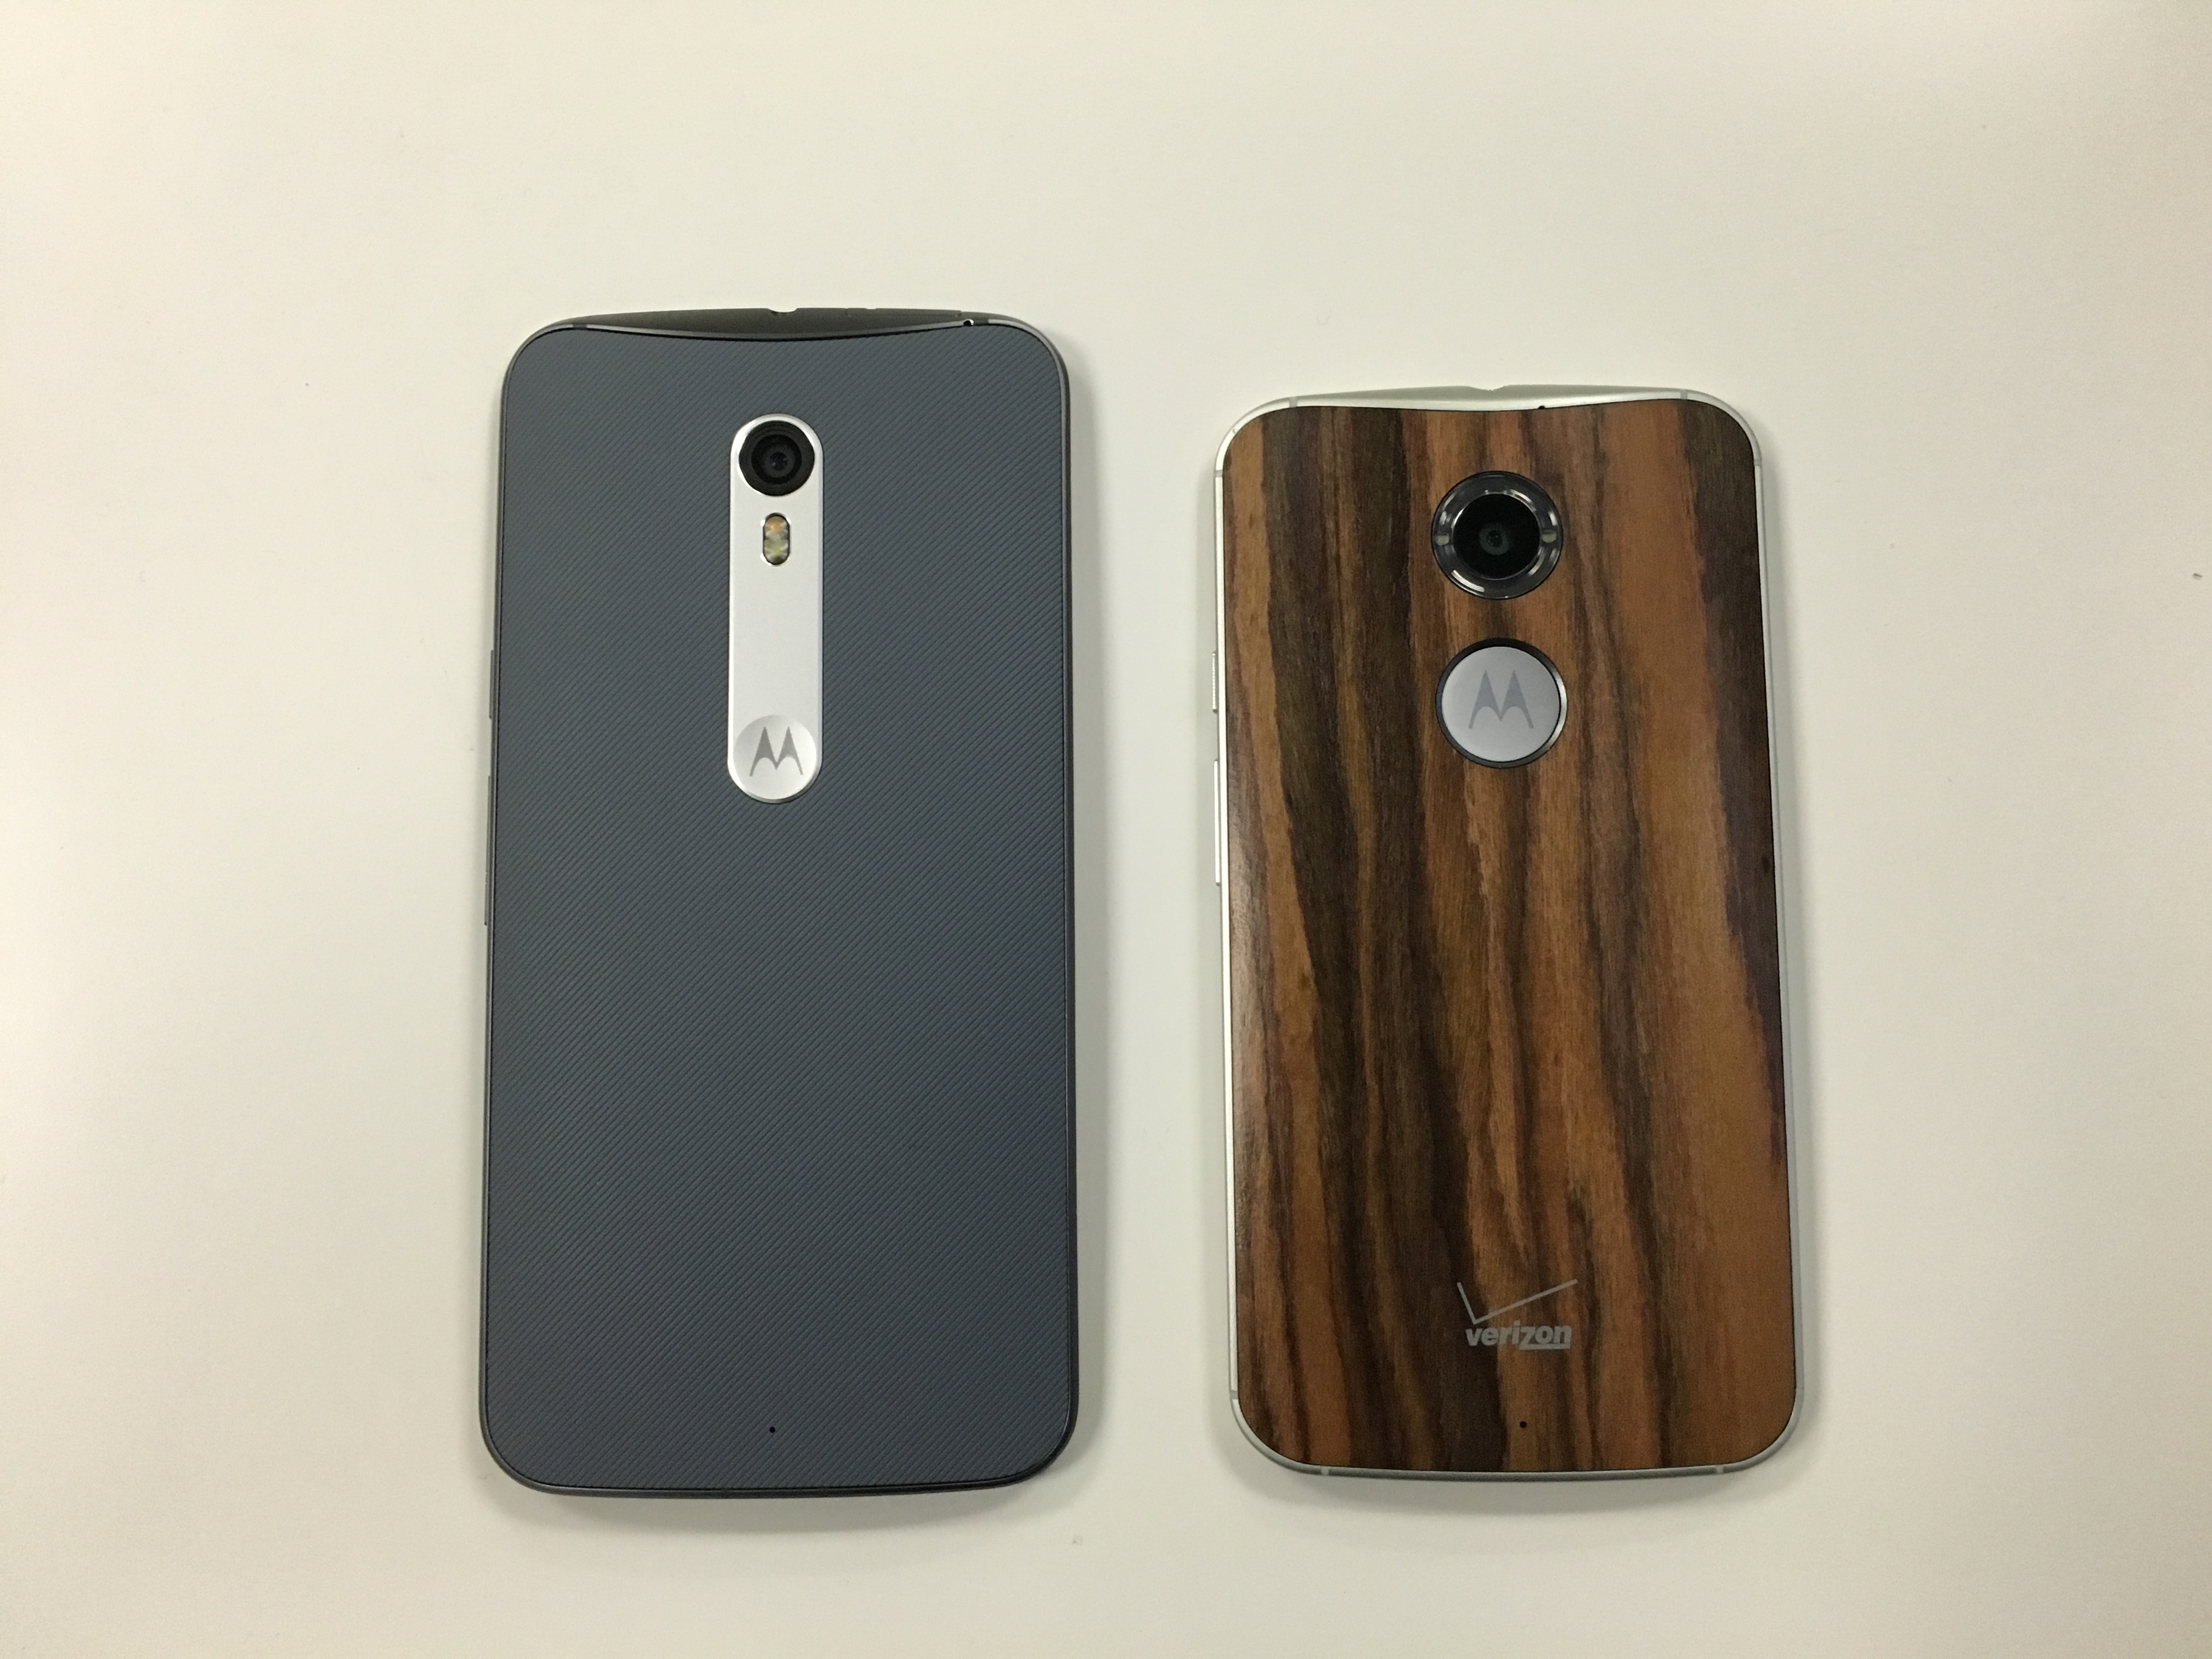 The back of the Moto X Pure Edition, left, next to the back of the Moto X (2nd Gen).